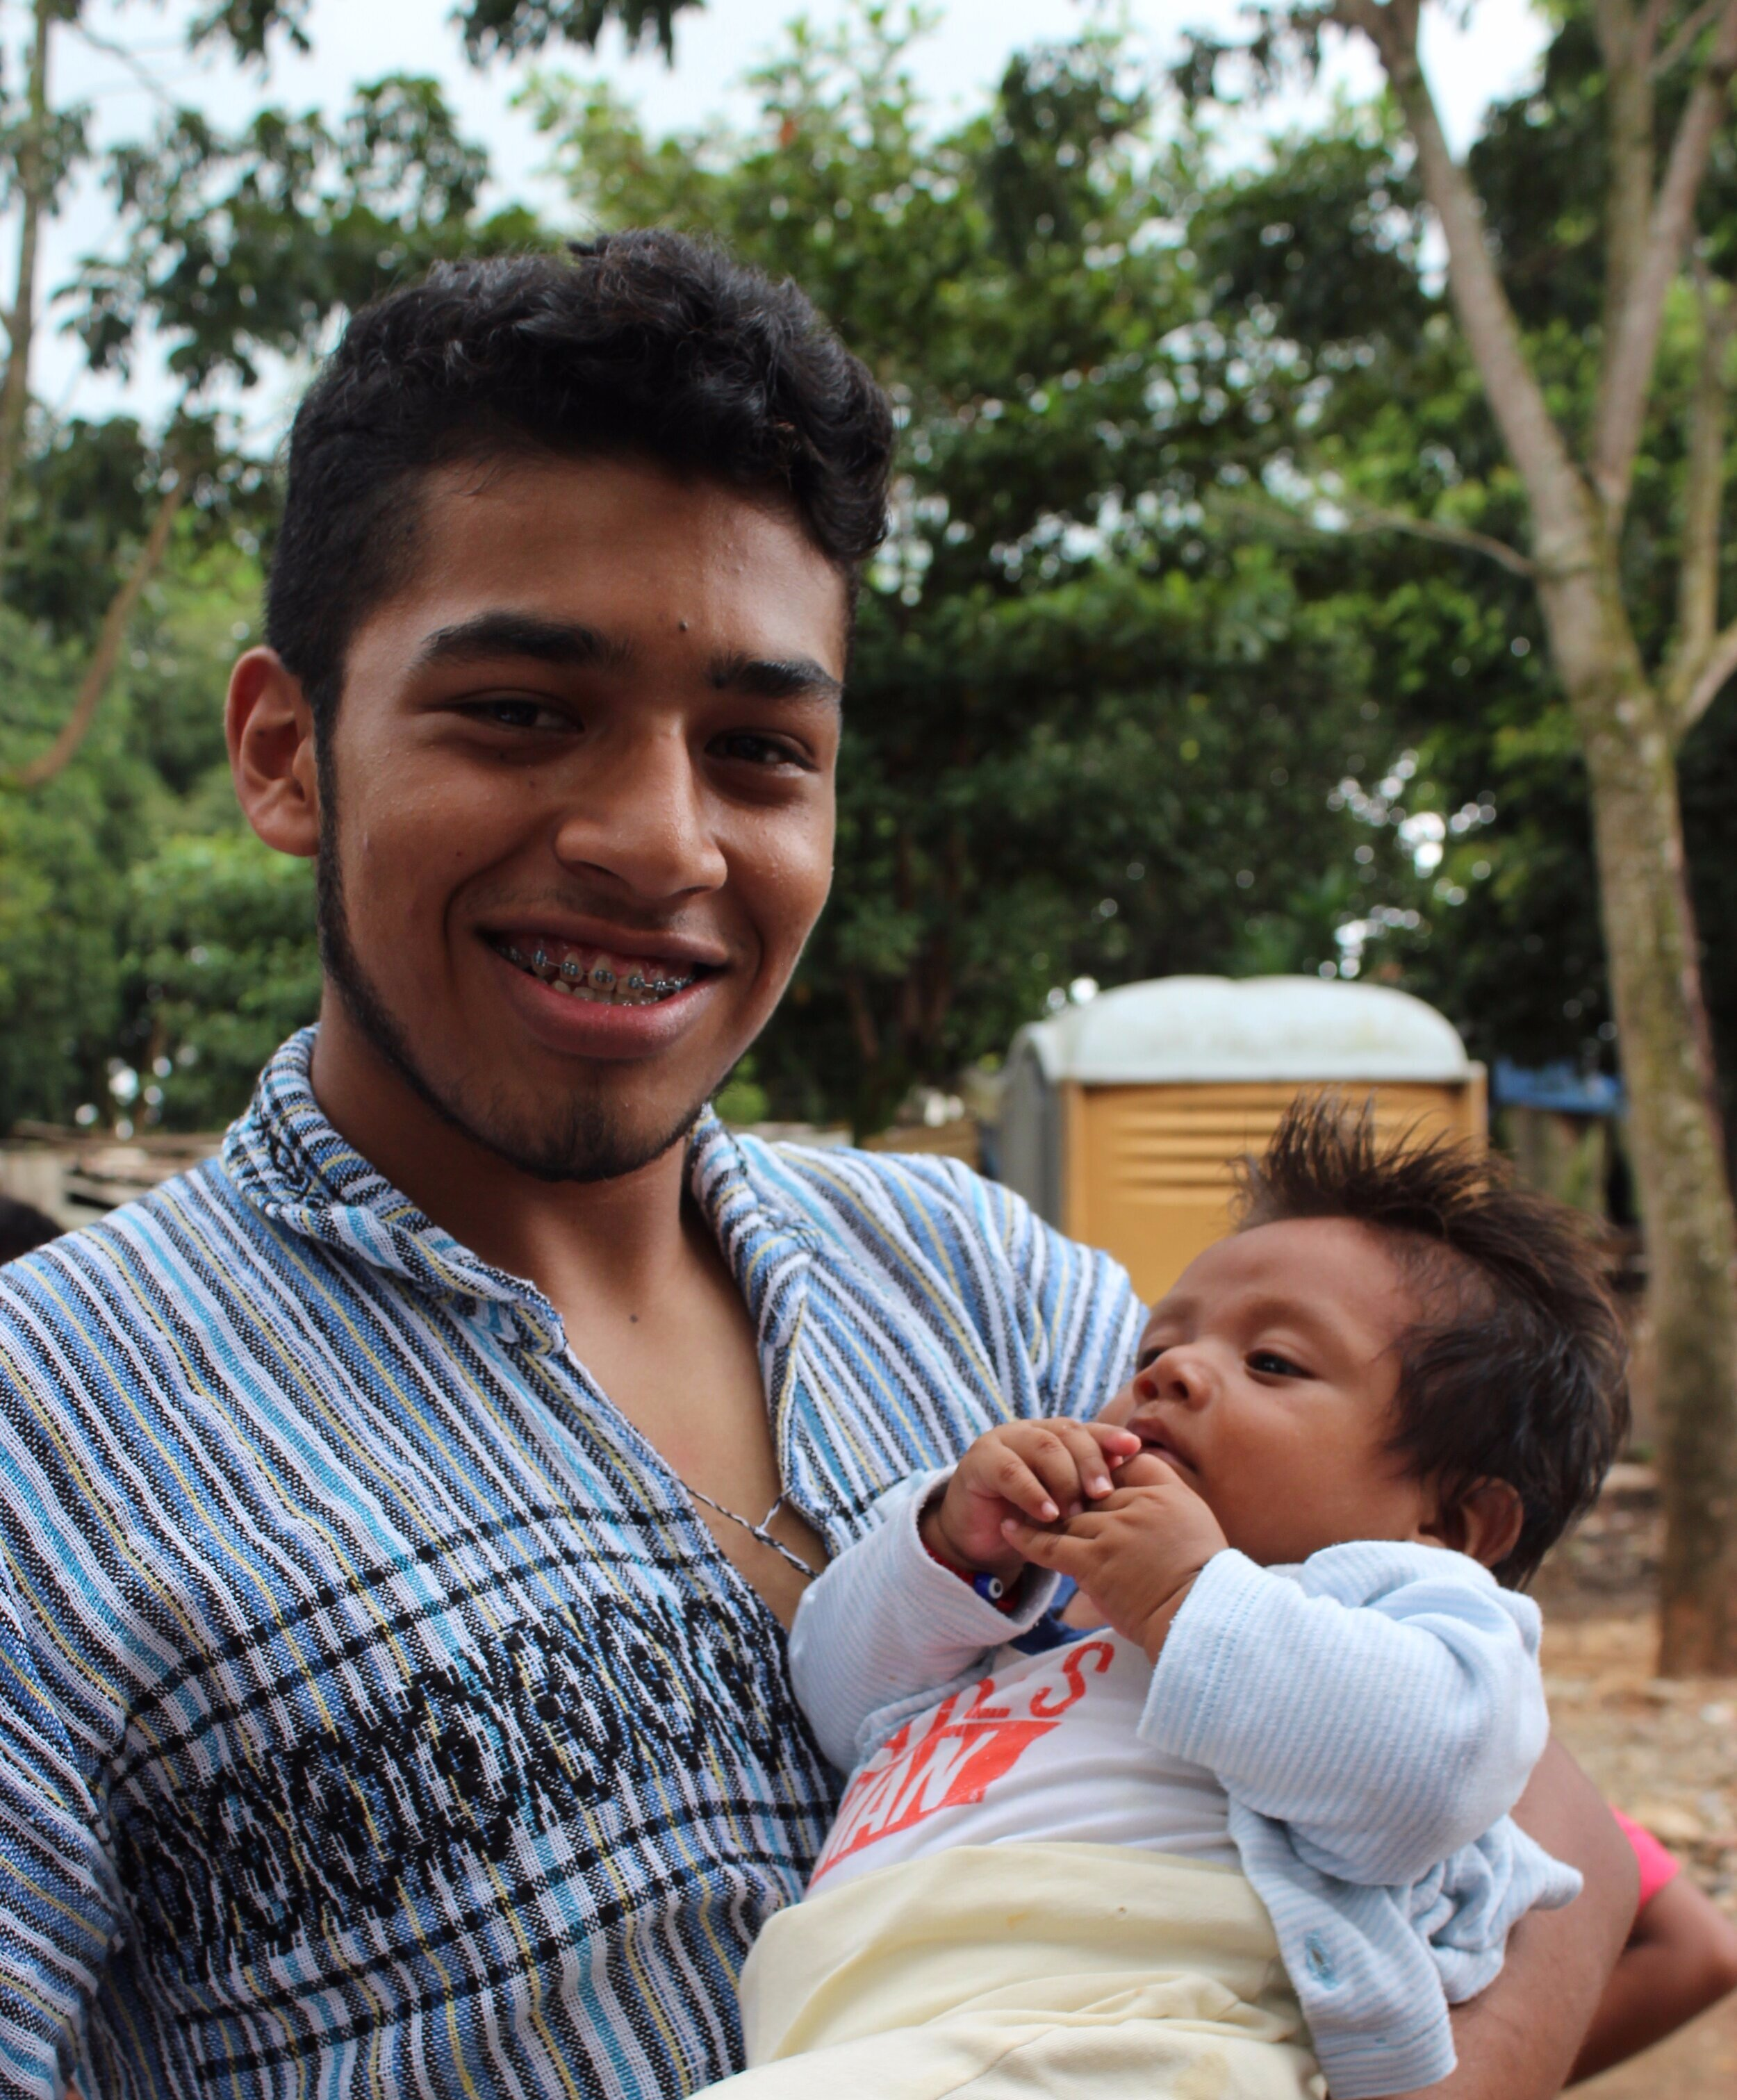 Opportunity for Obed - Obed is loved by all our teams from the USA. He is the son of Pastor Cesar Salcedo and Mauri of Tuxtepec, Oaxaca and graduated from high school this past year. He is not married nor does he have children, but you will often find a baby in Obed's arms. Recently, he was accepted into the Dallas Baptist University to study English for an 8 week international program. The tuition totals $3,500 which is half the normal cost. It seems that the Lord has opened an amazing opportunity for Obed. If you would like to help us raise the tuition funds, please send donations to MXO.